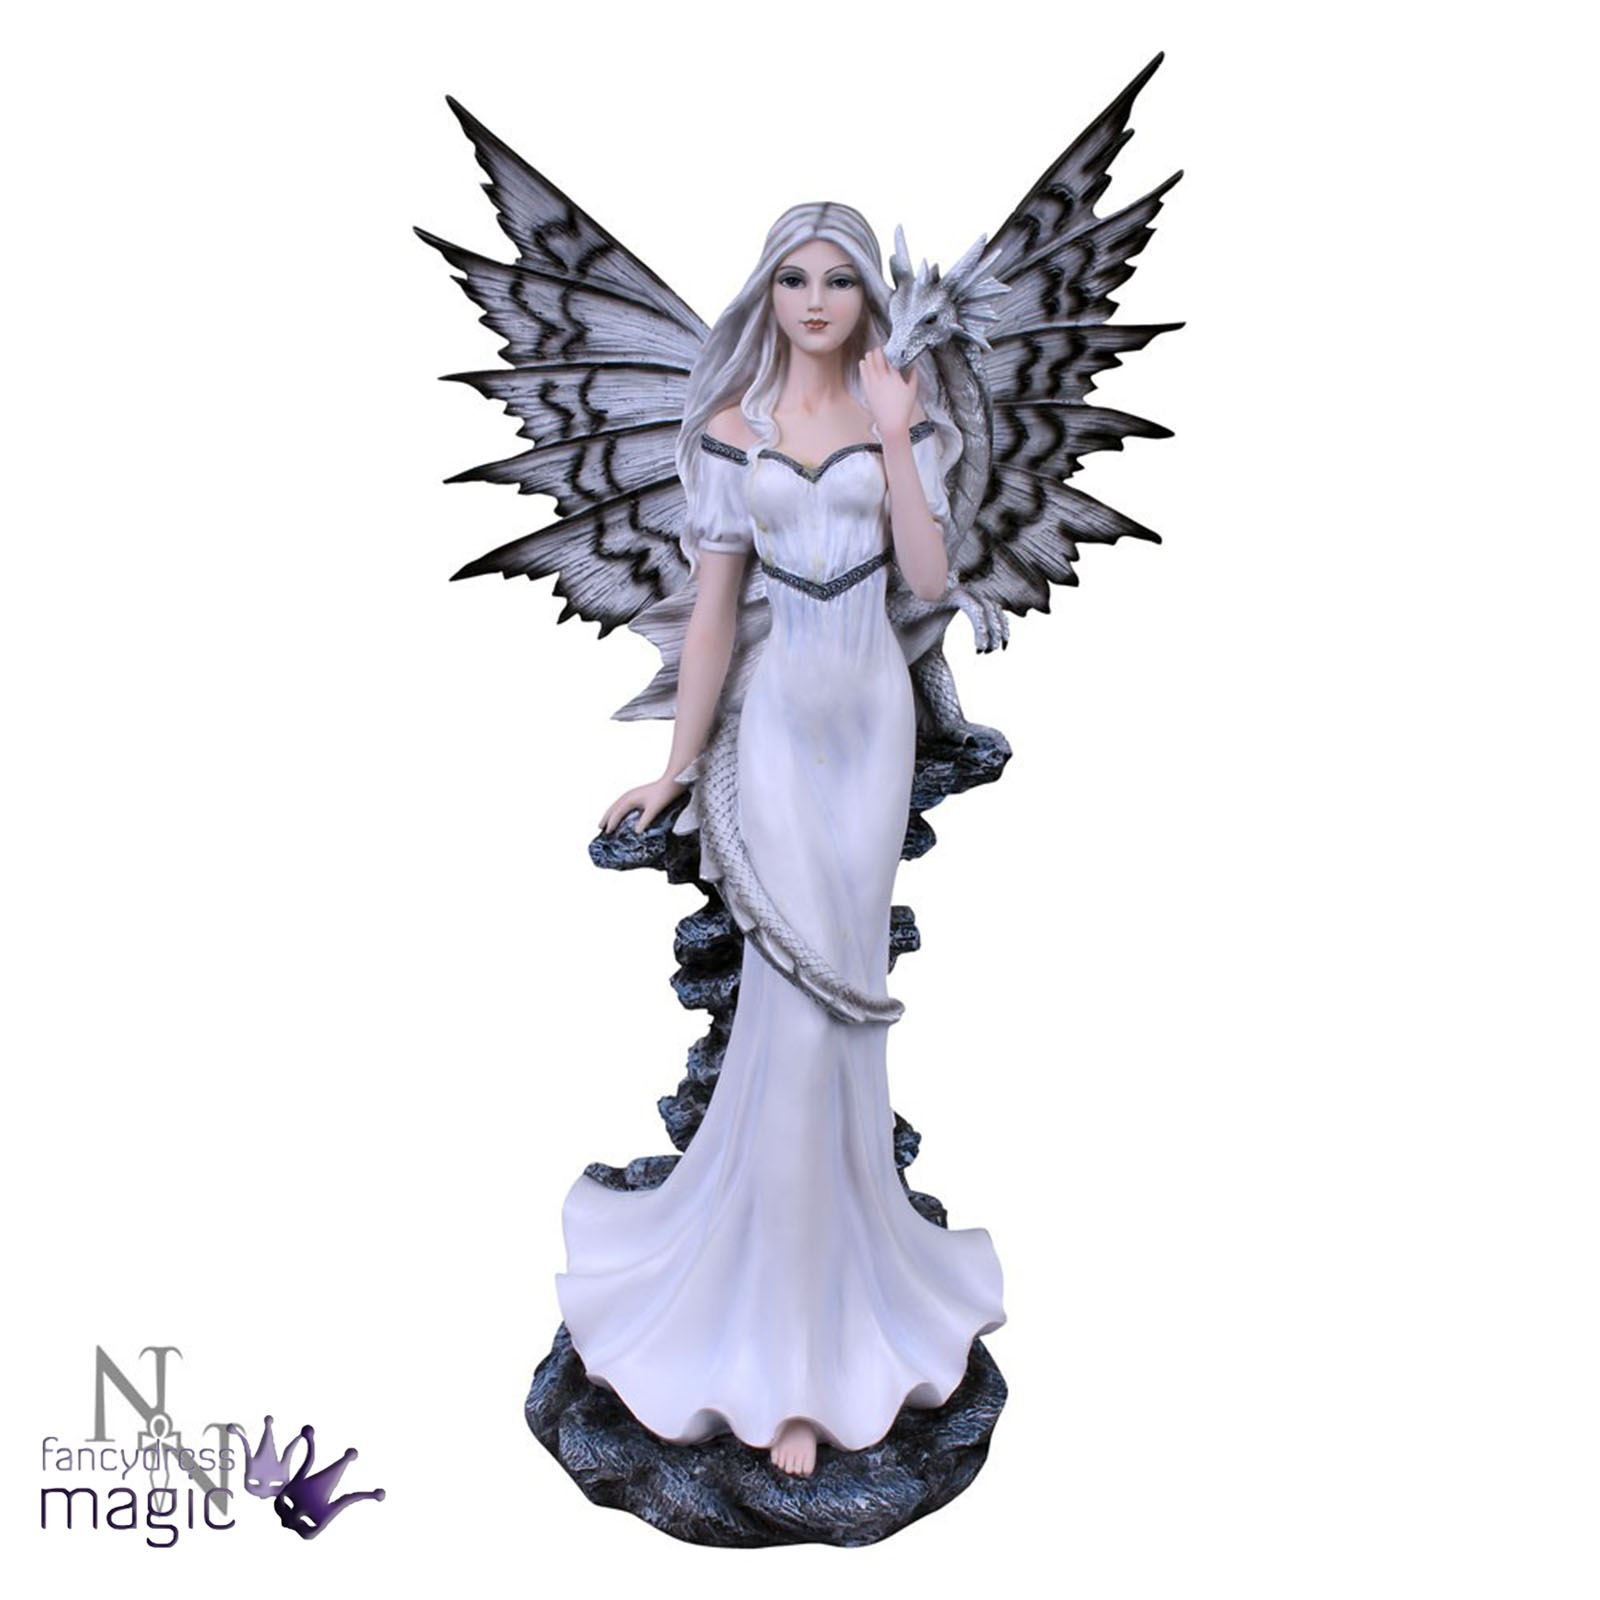 Nemesis Now Premium Large Fairy Gothic Figurine Sculpture